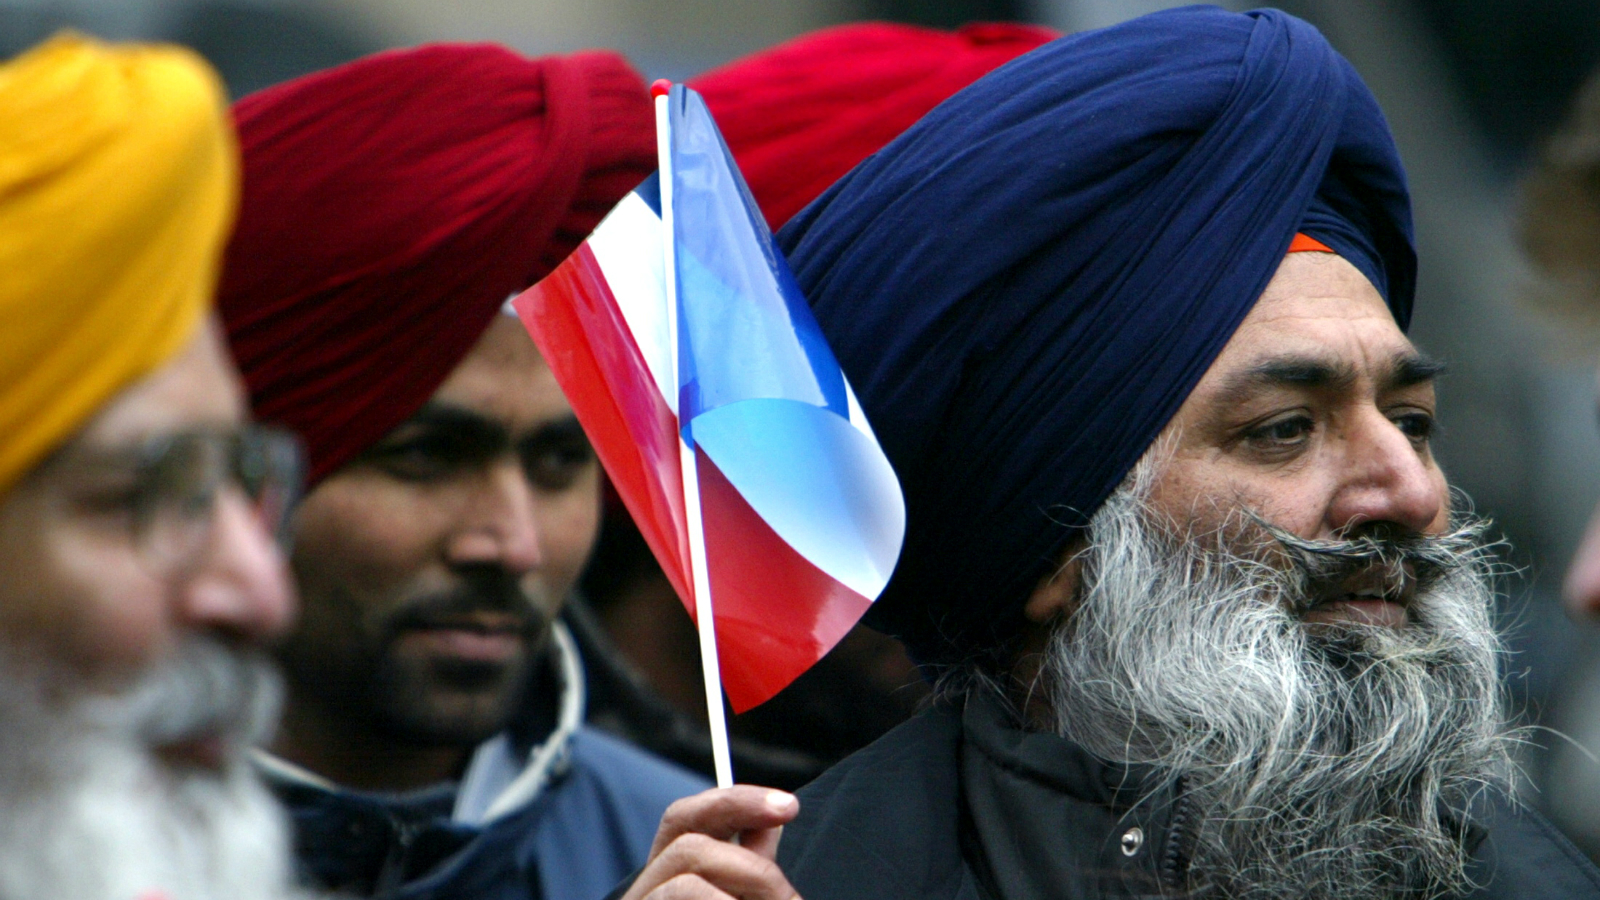 Sikhs wave the french national flag as about 3,000 Sikhs from across Europe march on a Paris boulevard to defend their traditional headgear against a looming French ban on religious symbols in state schools, Paris January 31, 2004. Sikhs say turbans and the light scarves that [women] wear are not religious but practical items meant to cover the hair they never cut.